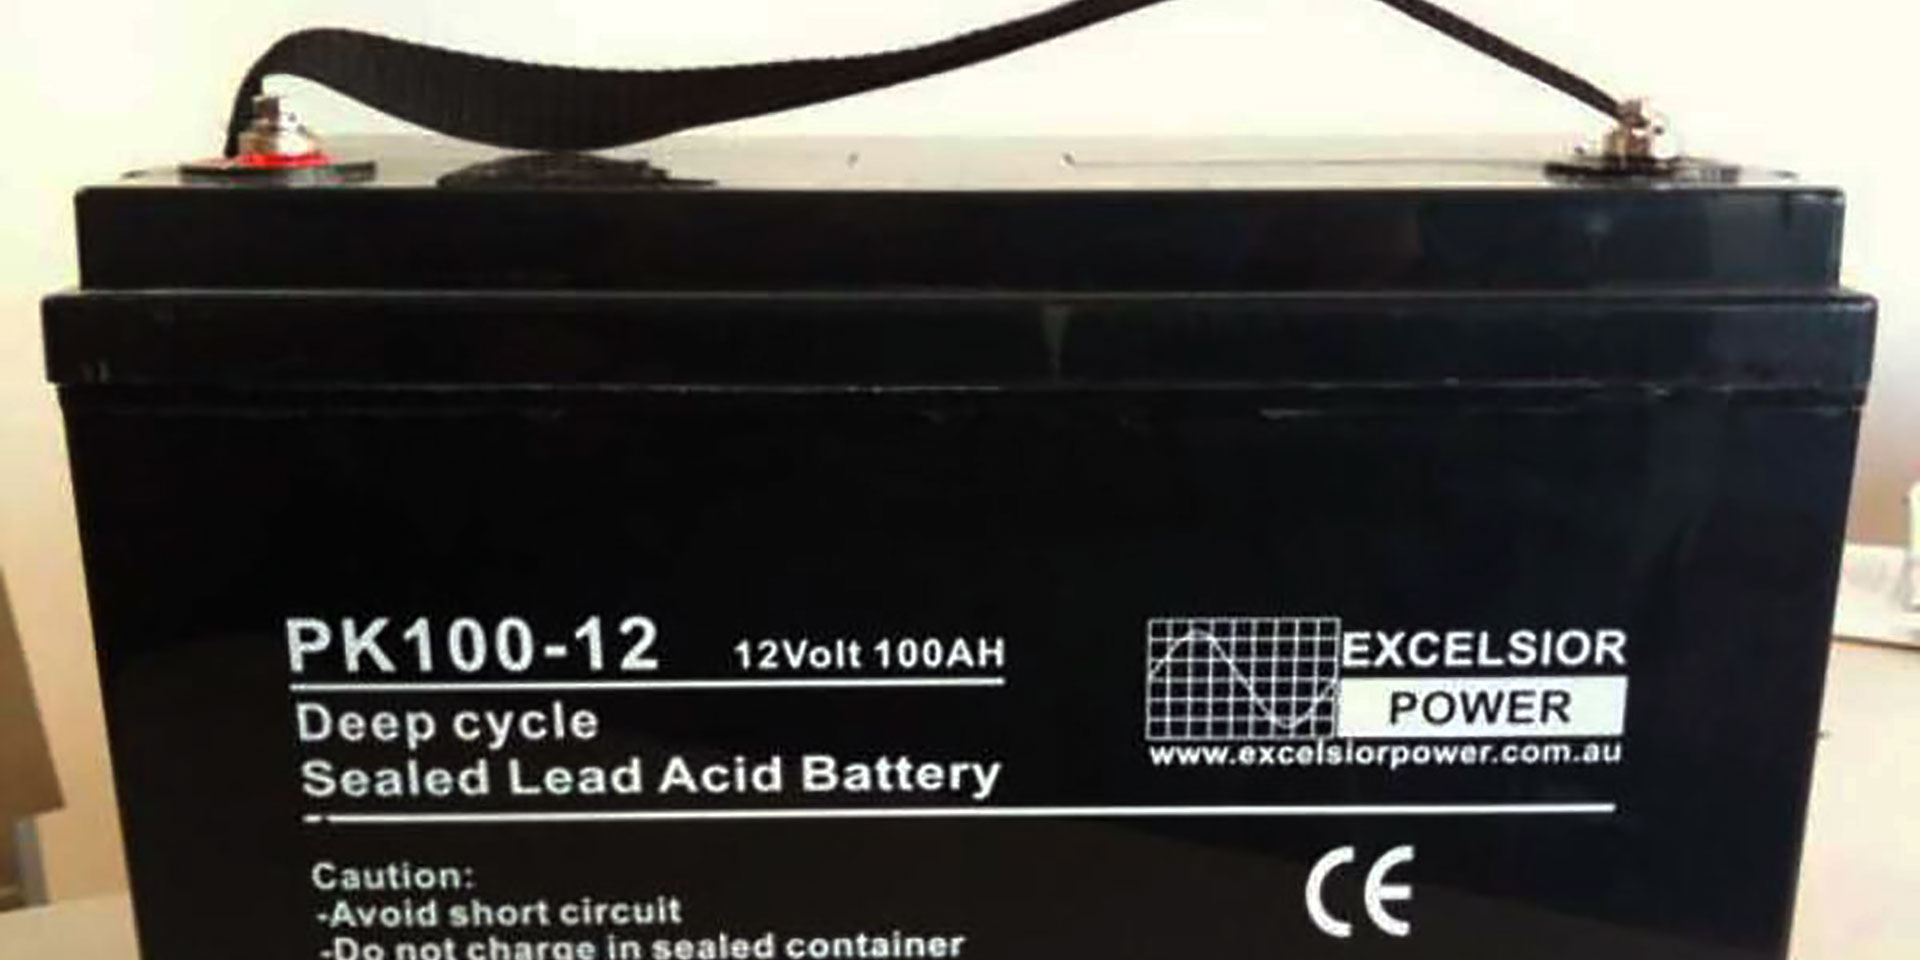 How many hours will a deep cycle battery last